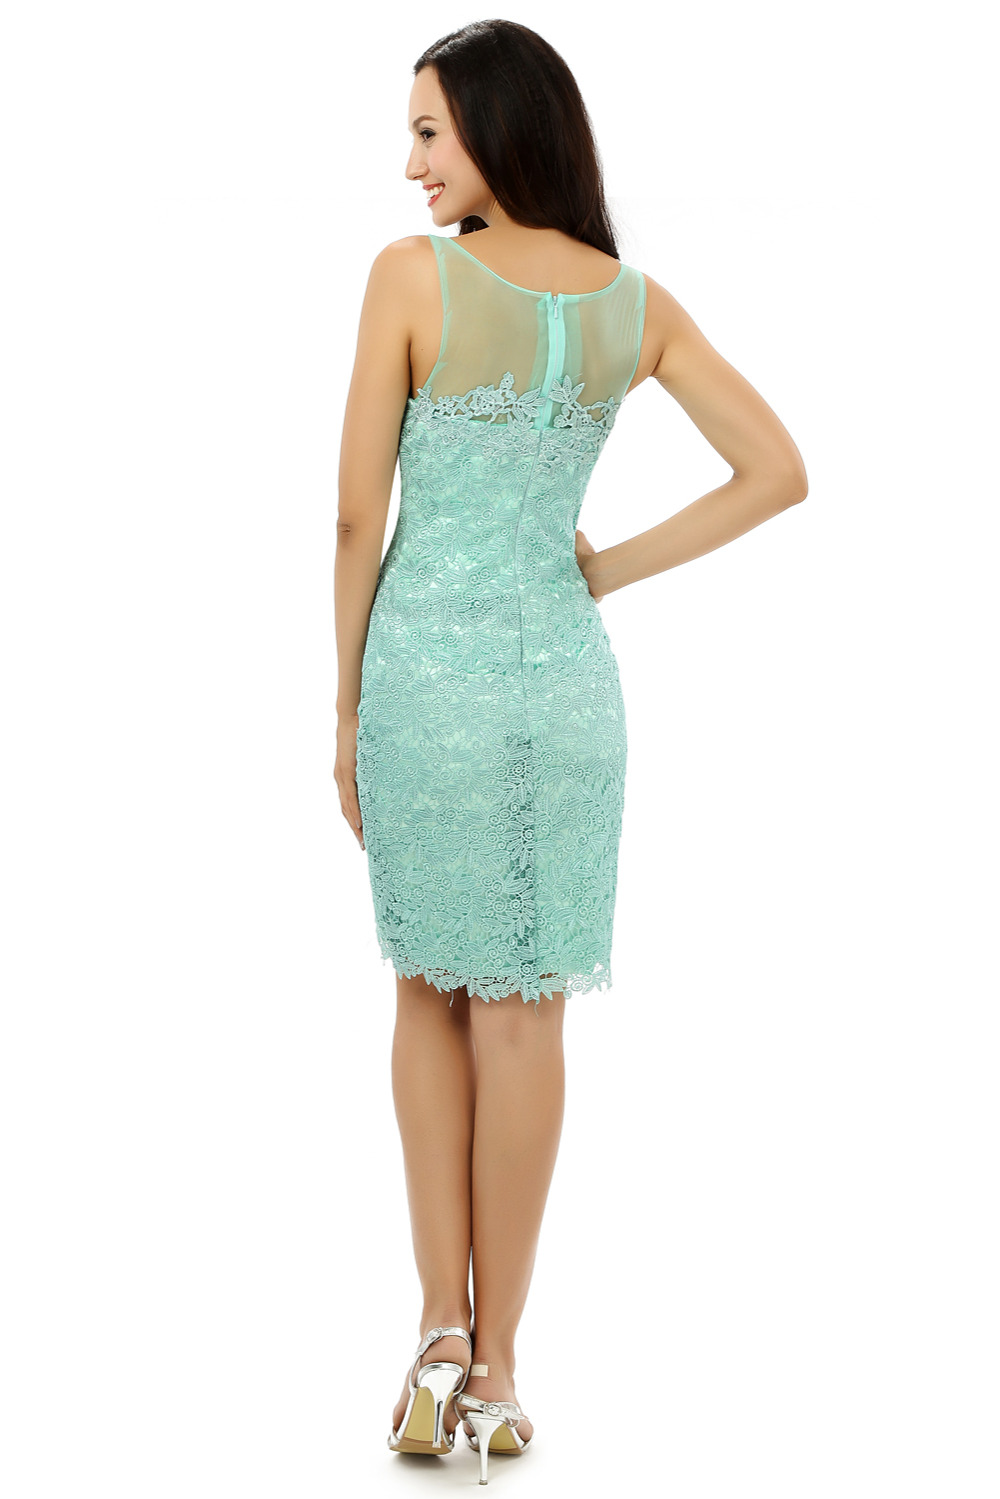 Lulus is best known for our huge selection of cute dresses under $ From everyday casual to prom. x. Free Shipping Over $50 & Free Returns! See Details. Free Shipping Over $50 & Free Returns! See Details. Free Shipping Over $50 & Free Returns! Details. SHOP.